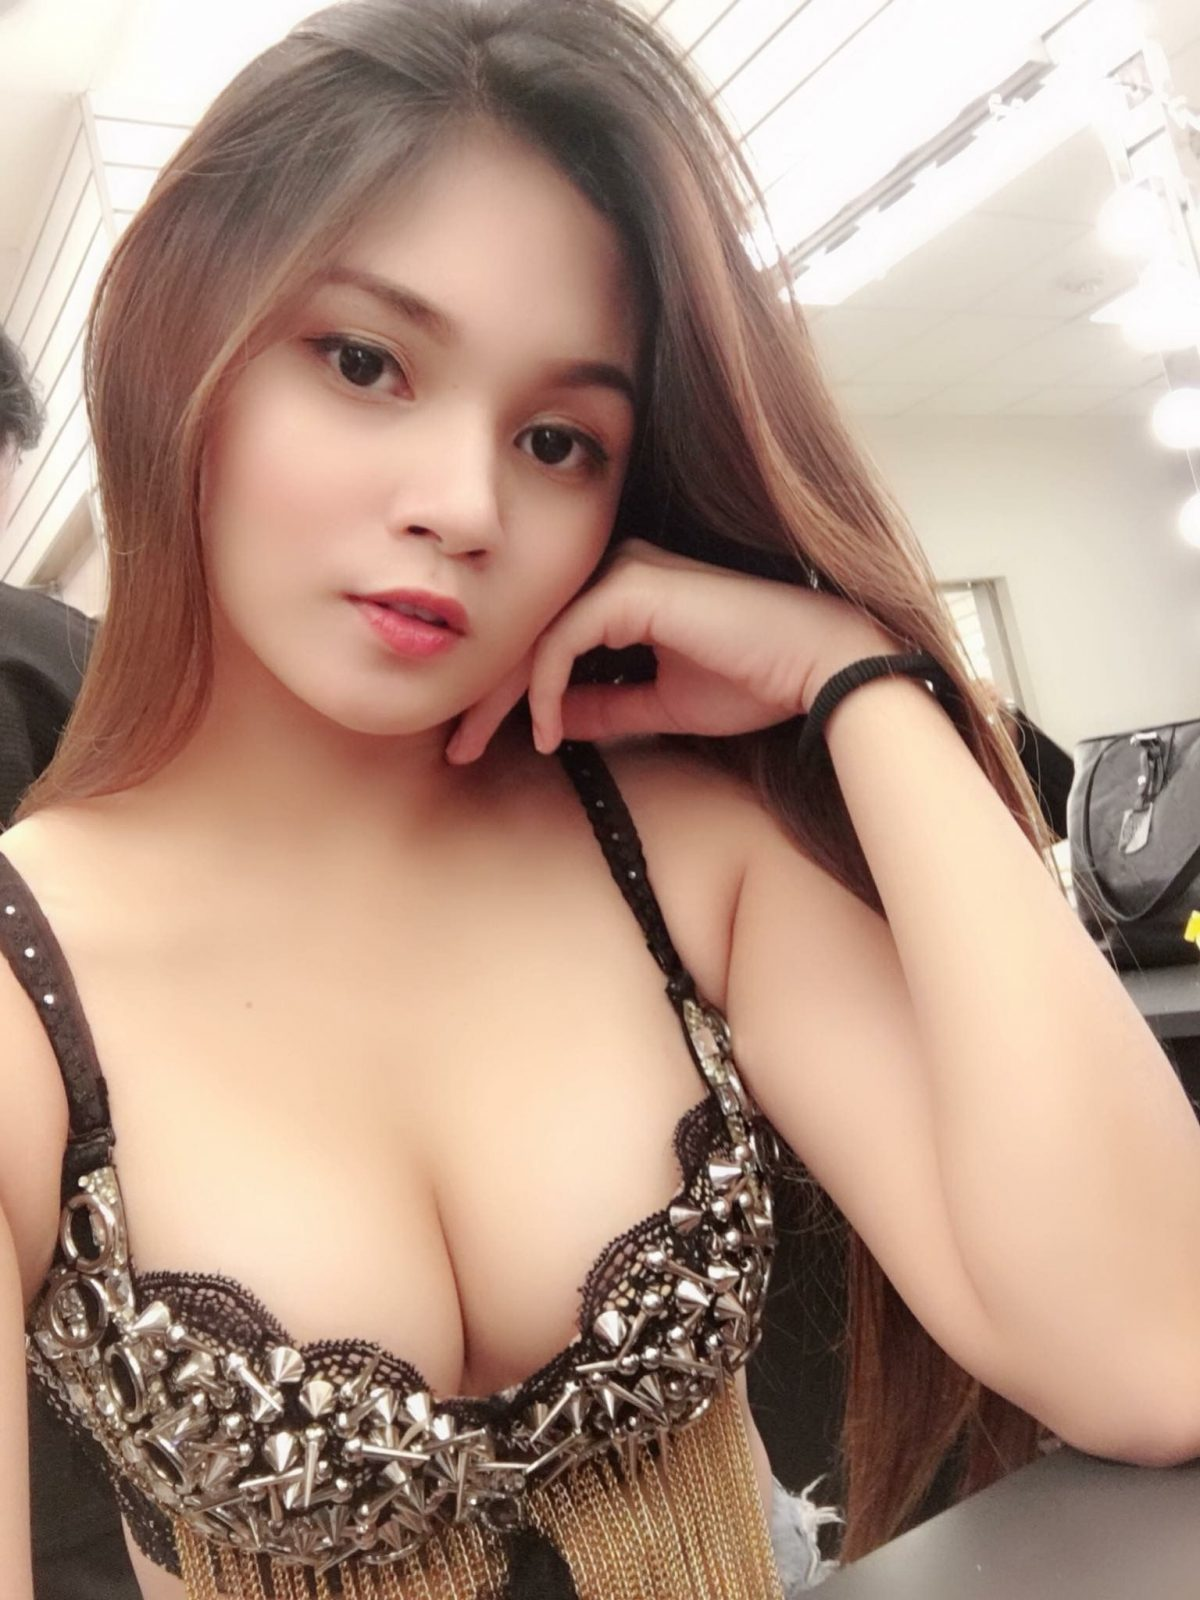 """A Man With Needs 3<span class=""""rating-result after_title mr-filter rating-result-8087""""><span class=""""mr-star-rating"""">    <span class=""""mr-custom-full-star""""  width=""""20px"""" height=""""20px""""></span>        <span class=""""mr-custom-empty-star""""  width=""""20px"""" height=""""20px""""></span>        <span class=""""mr-custom-empty-star""""  width=""""20px"""" height=""""20px""""></span>        <span class=""""mr-custom-empty-star""""  width=""""20px"""" height=""""20px""""></span>        <span class=""""mr-custom-empty-star""""  width=""""20px"""" height=""""20px""""></span>    </span><span class=""""star-result"""">1.25/5</span><span class=""""count"""">(4)</span></span>"""